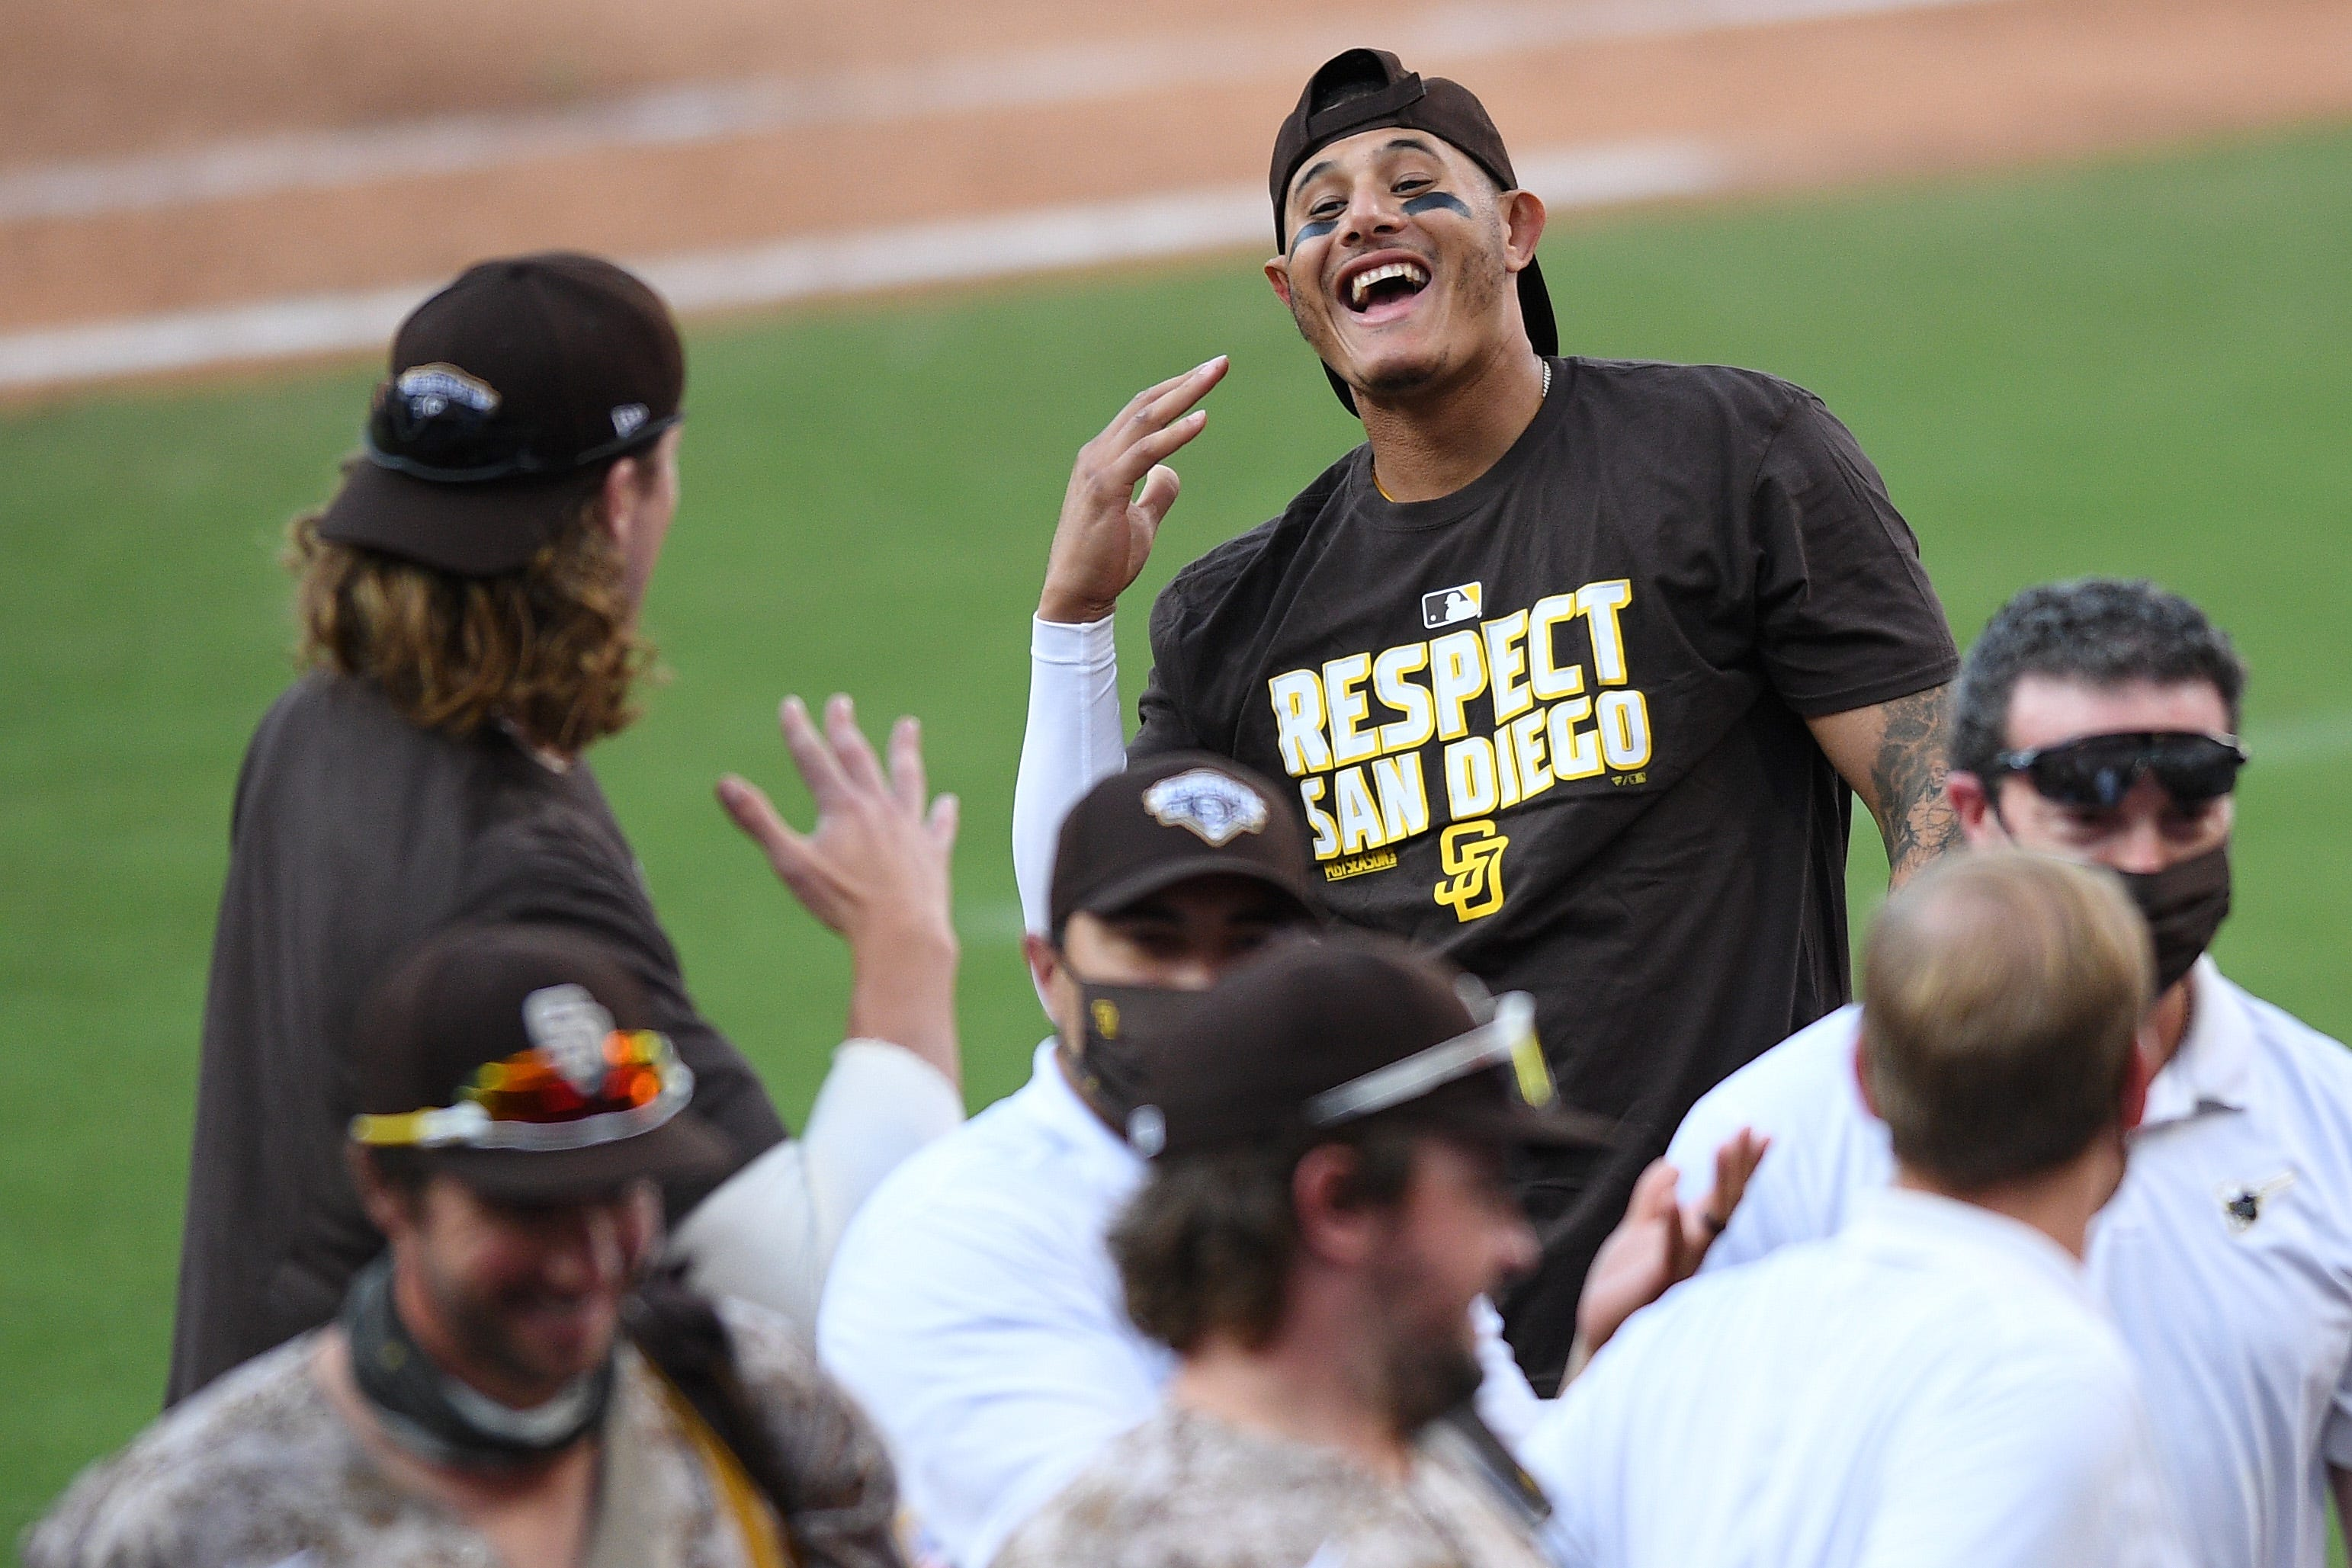 Padres vs. Cardinals: National League Wild Card series preview, schedule, predictions